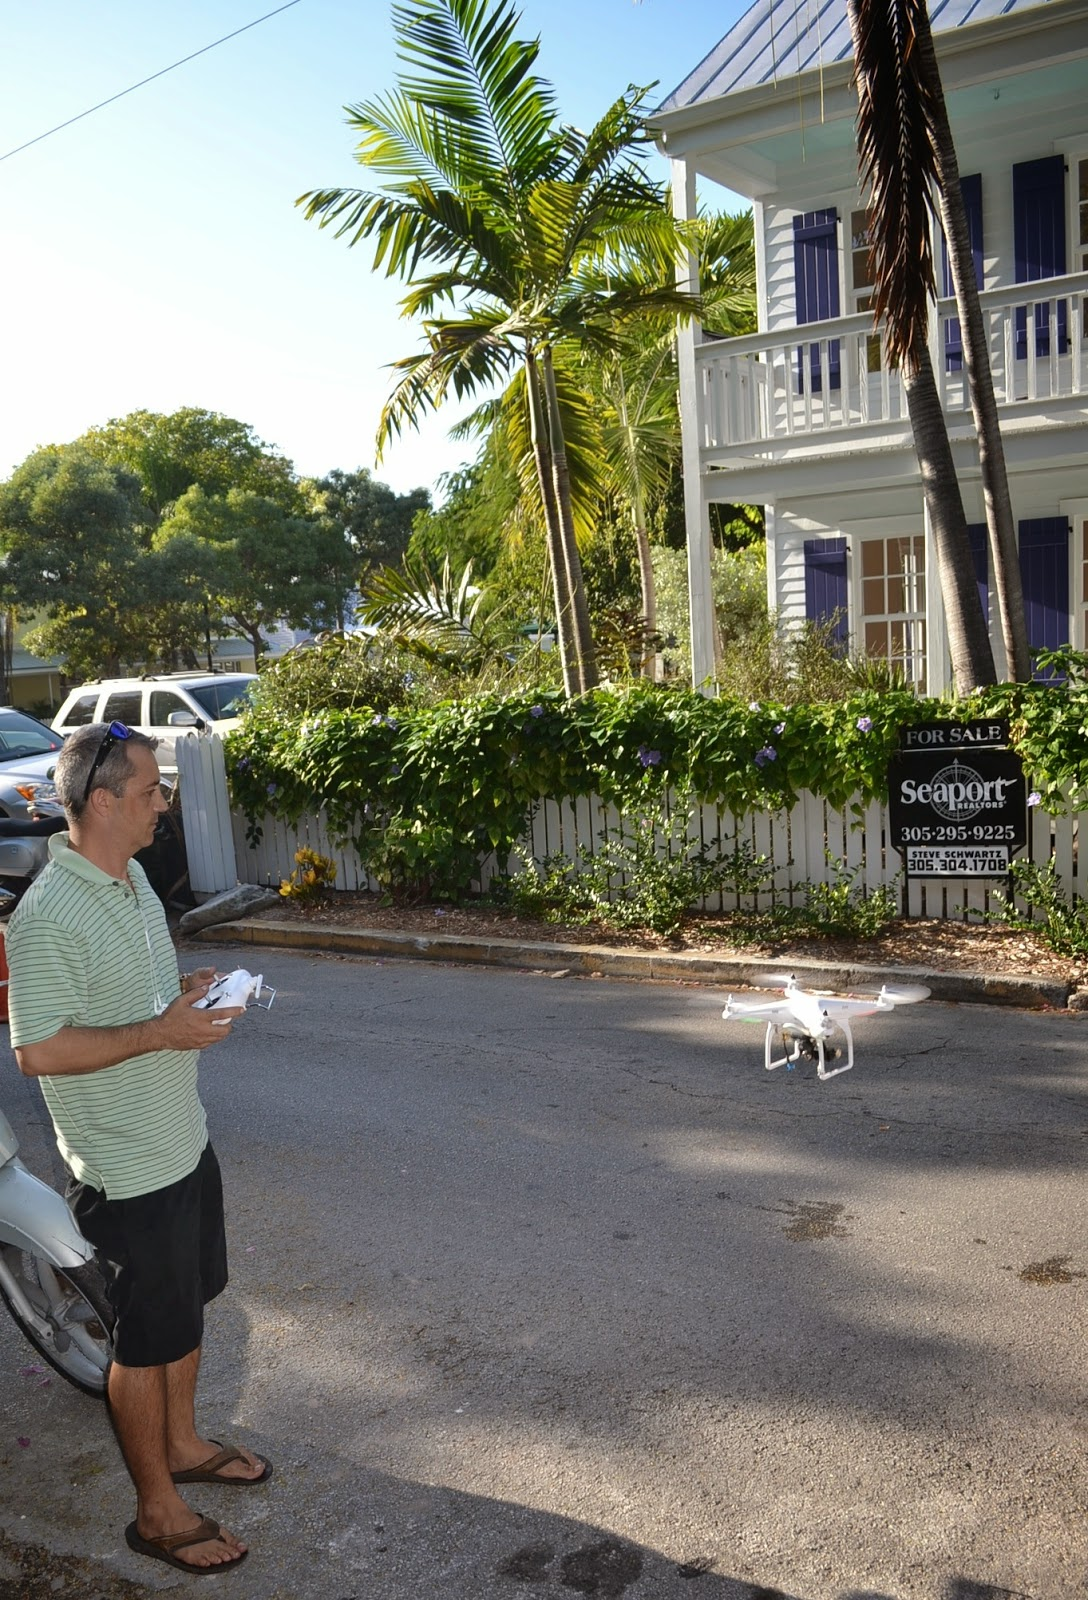 Drone Photography in Action at 405 Olivia Street in Key West